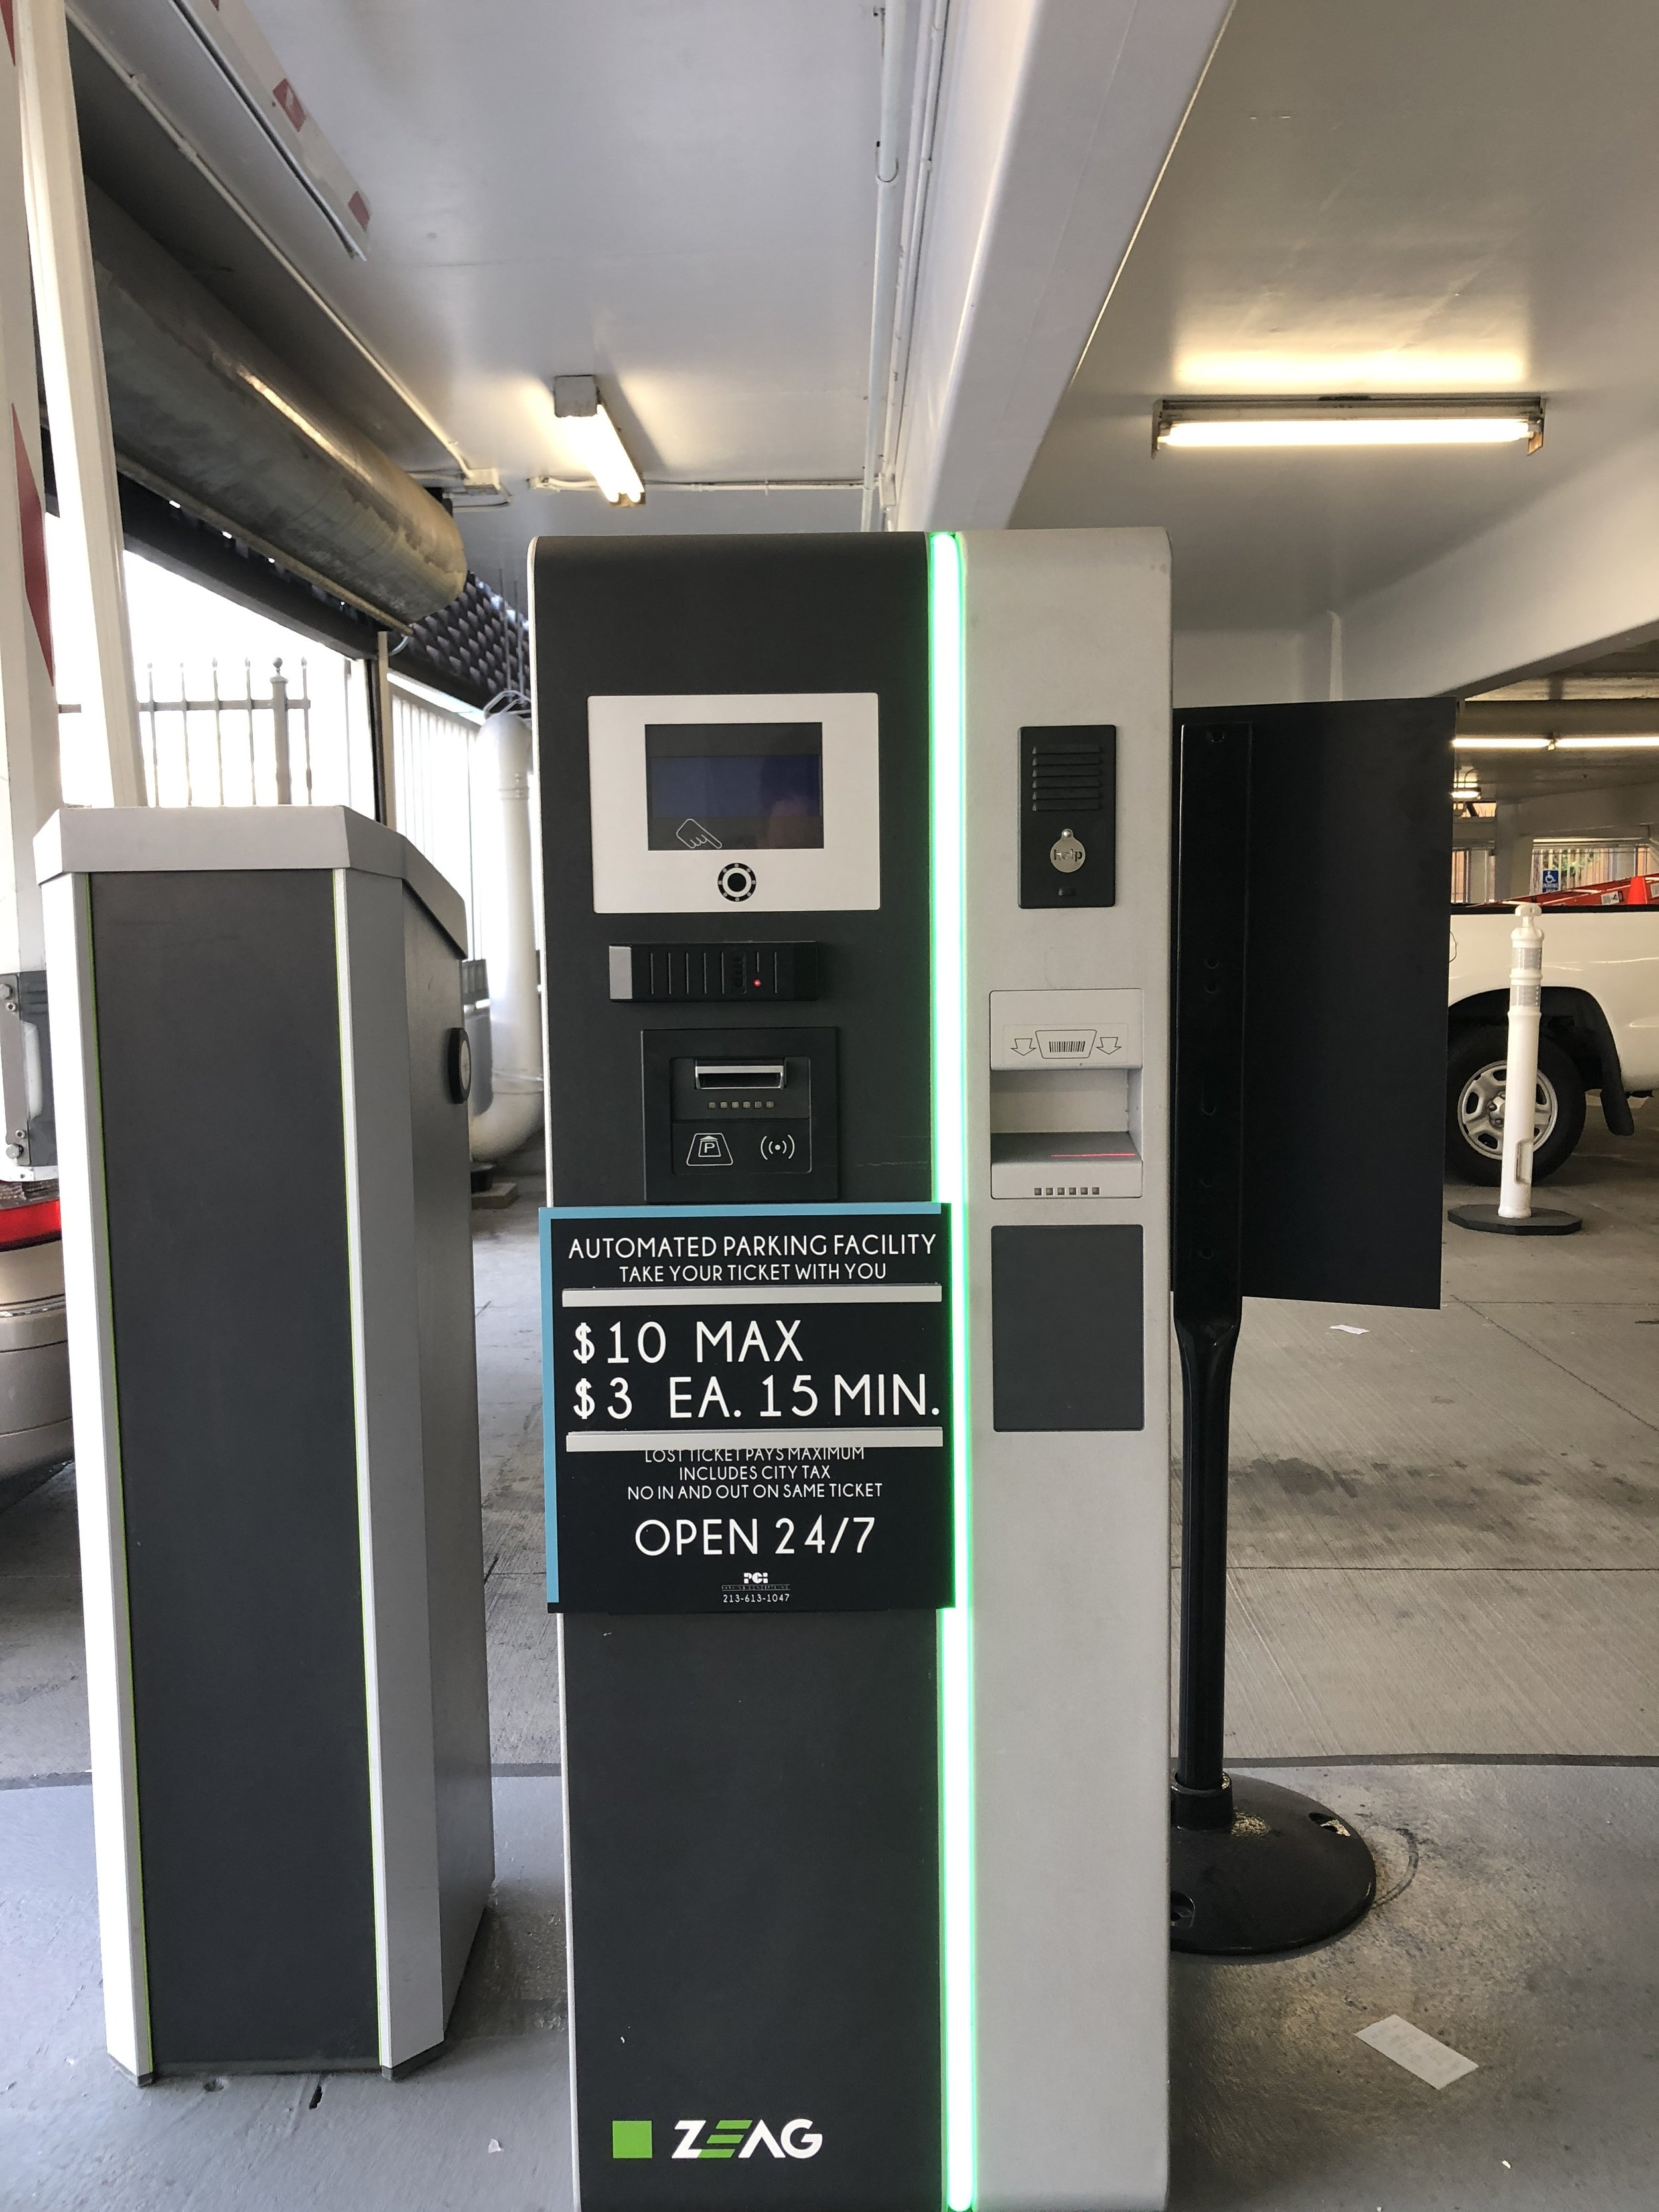 Parking Rate Equipment Sign